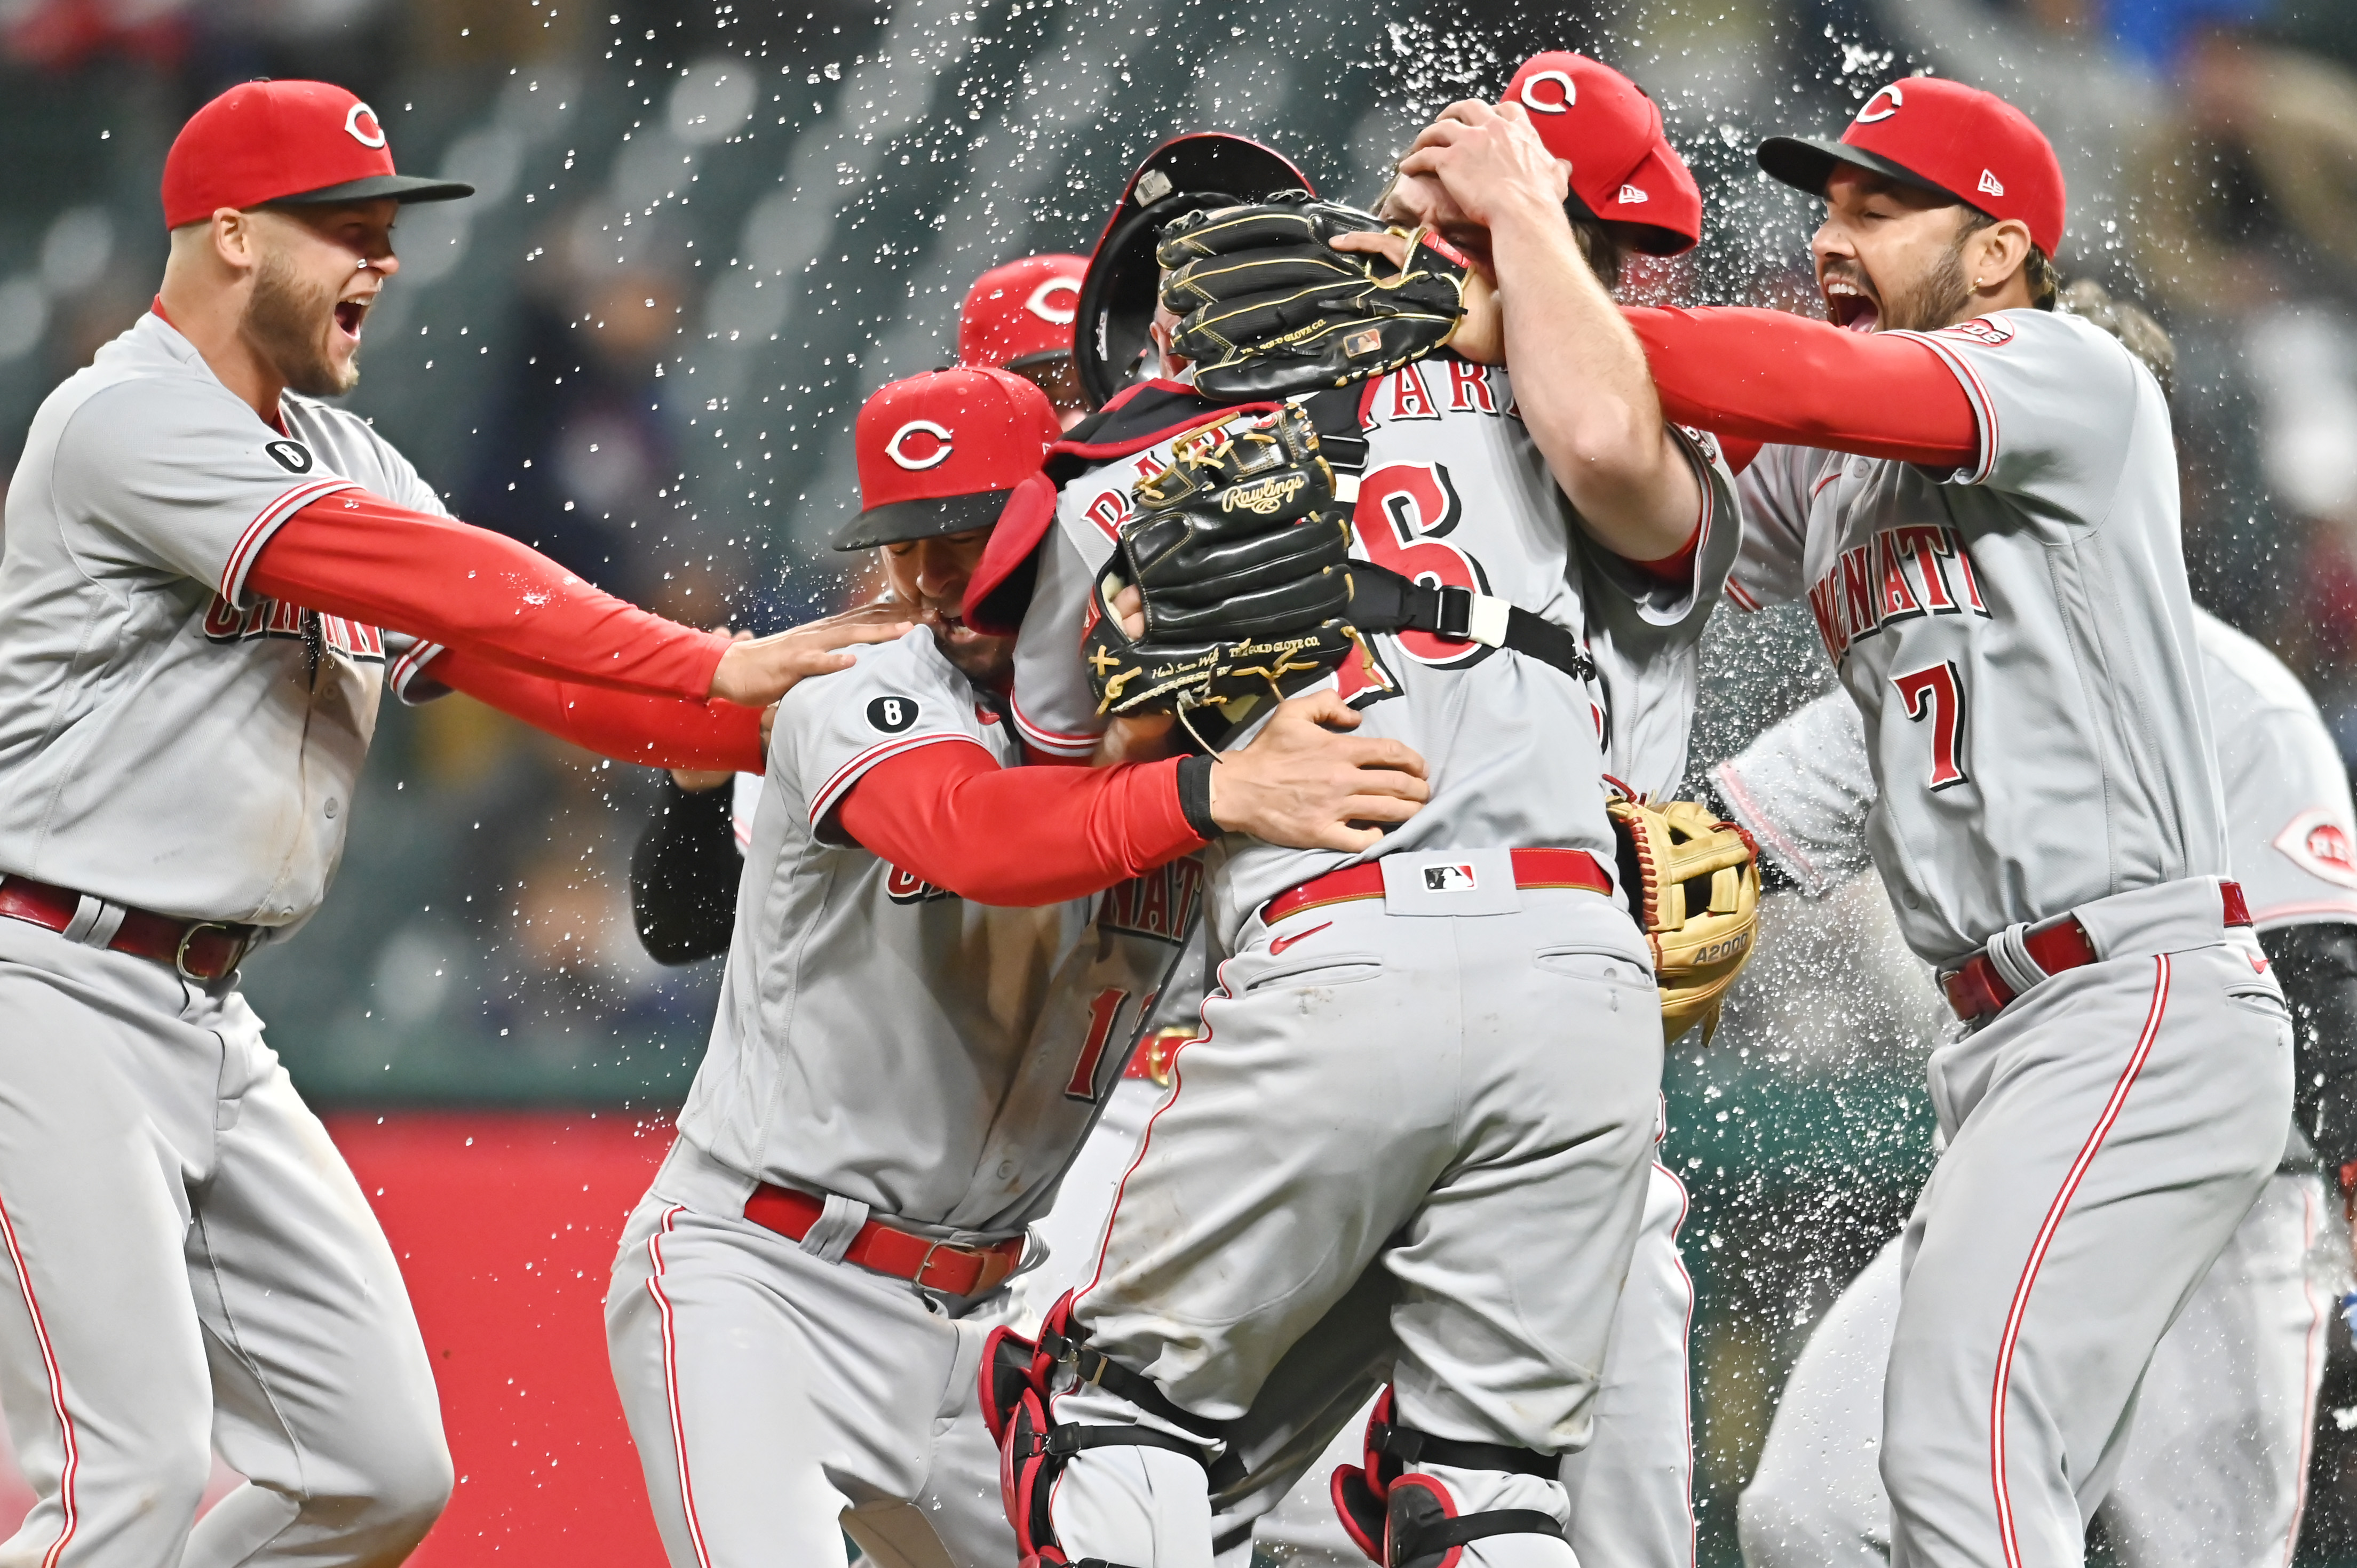 May 7, 2021; Cleveland, Ohio, USA; The Cincinnati Reds celebrate with pitcher Wade Miley (22) after Miley threw a no-hitter against the Cleveland Indians at Progressive Field. Mandatory Credit: Ken Blaze-USA TODAY Sports